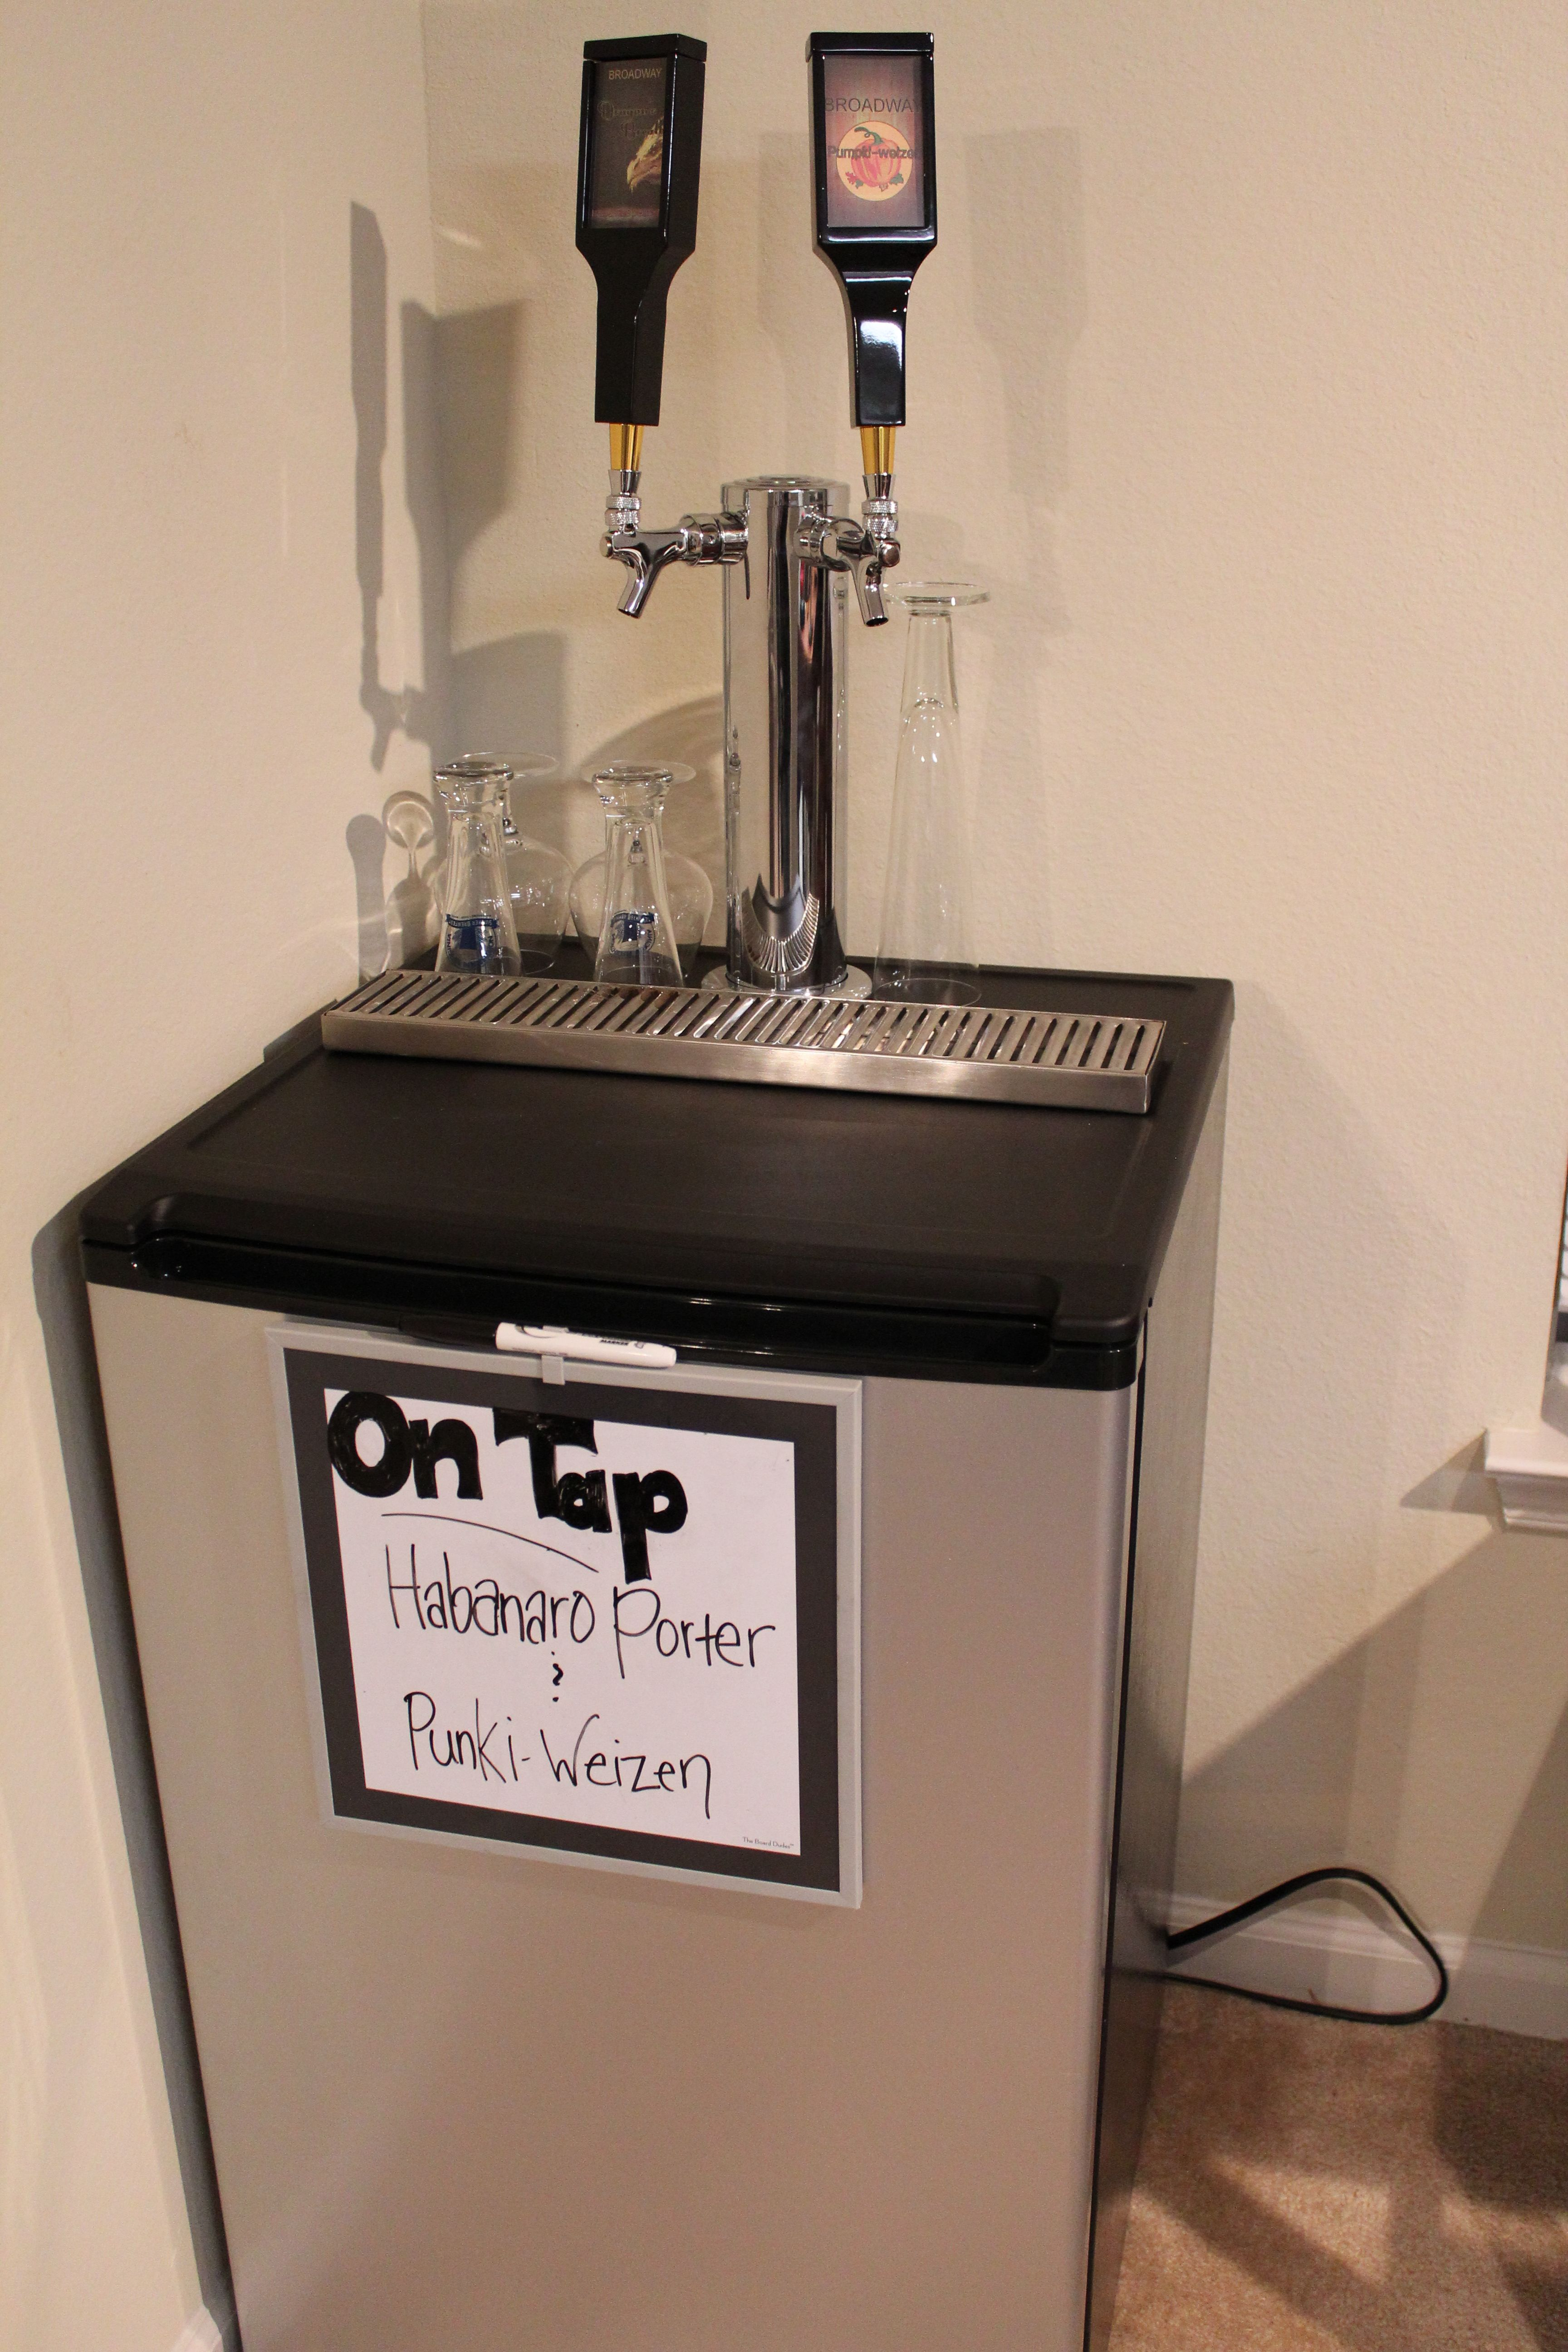 Beer tap systems for home - Explore Taps Beer And More Our Home Draft System